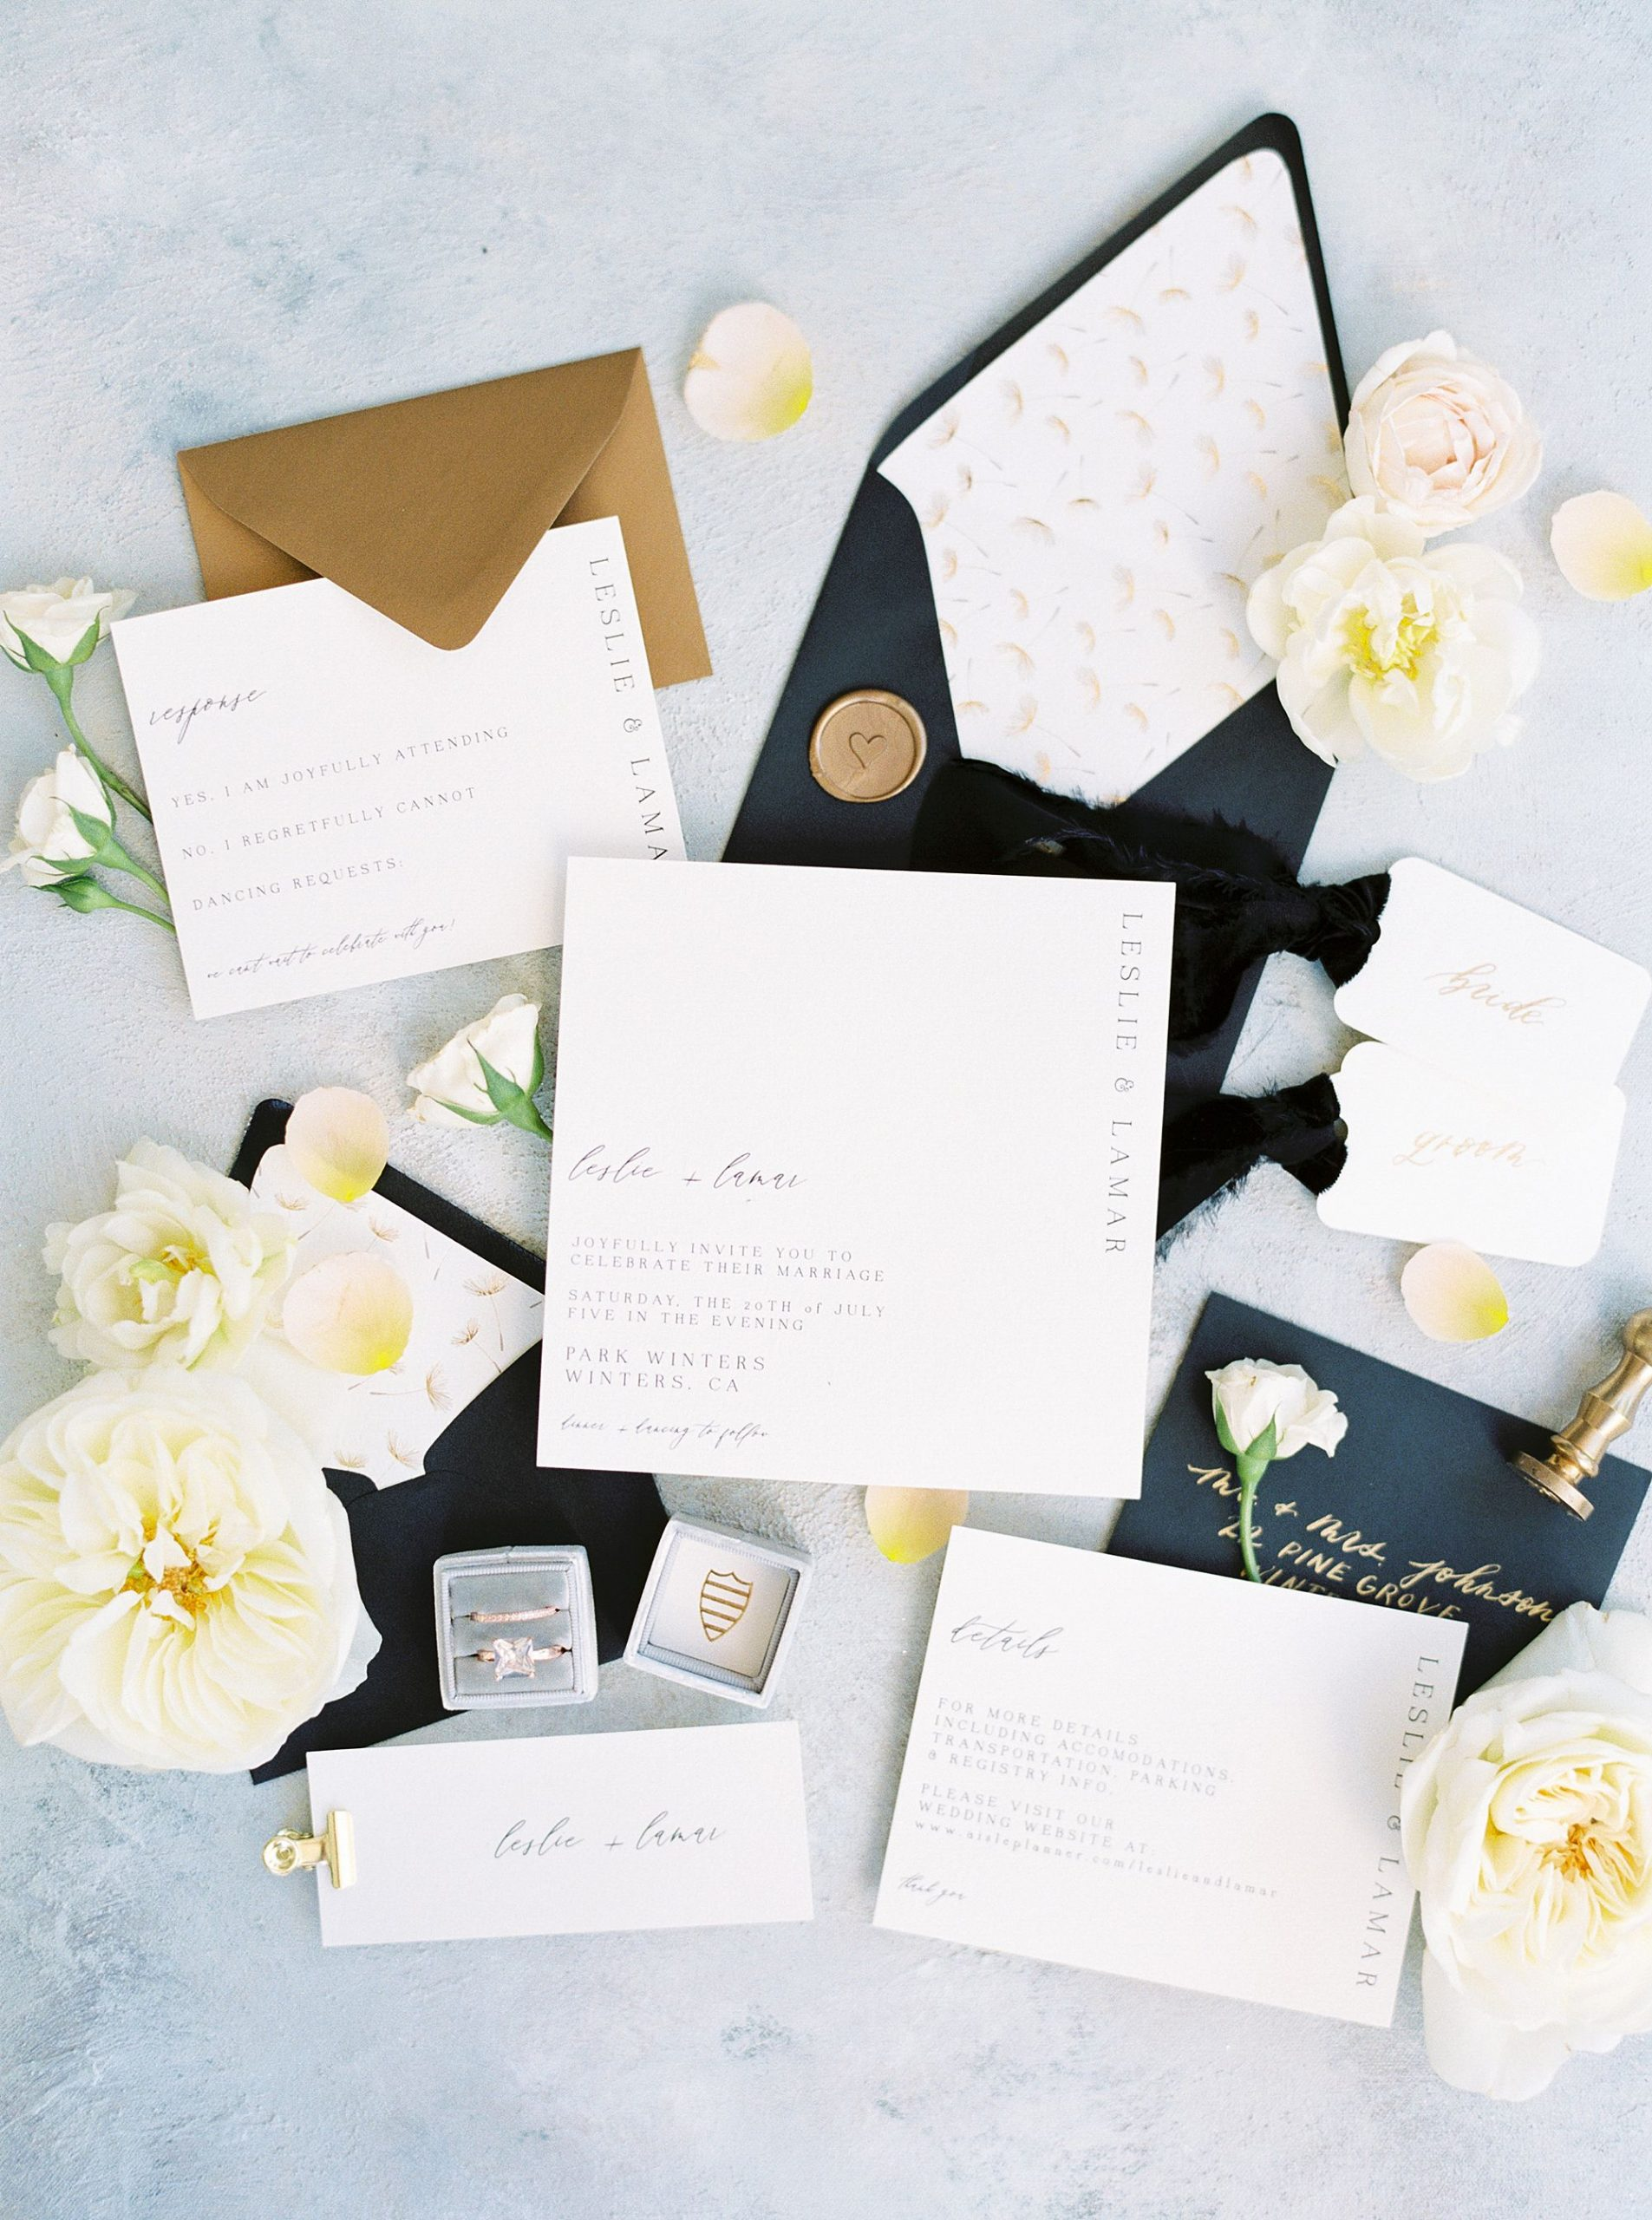 Park Winters Micro-Wedding Inspiration on Style Me Pretty - Stephanie Teague Events - Ashley Baumgartner - Park Winters Wedding - Black Tie Wedding - Micro-Wedding Sacramento Photographer_0056.jpg